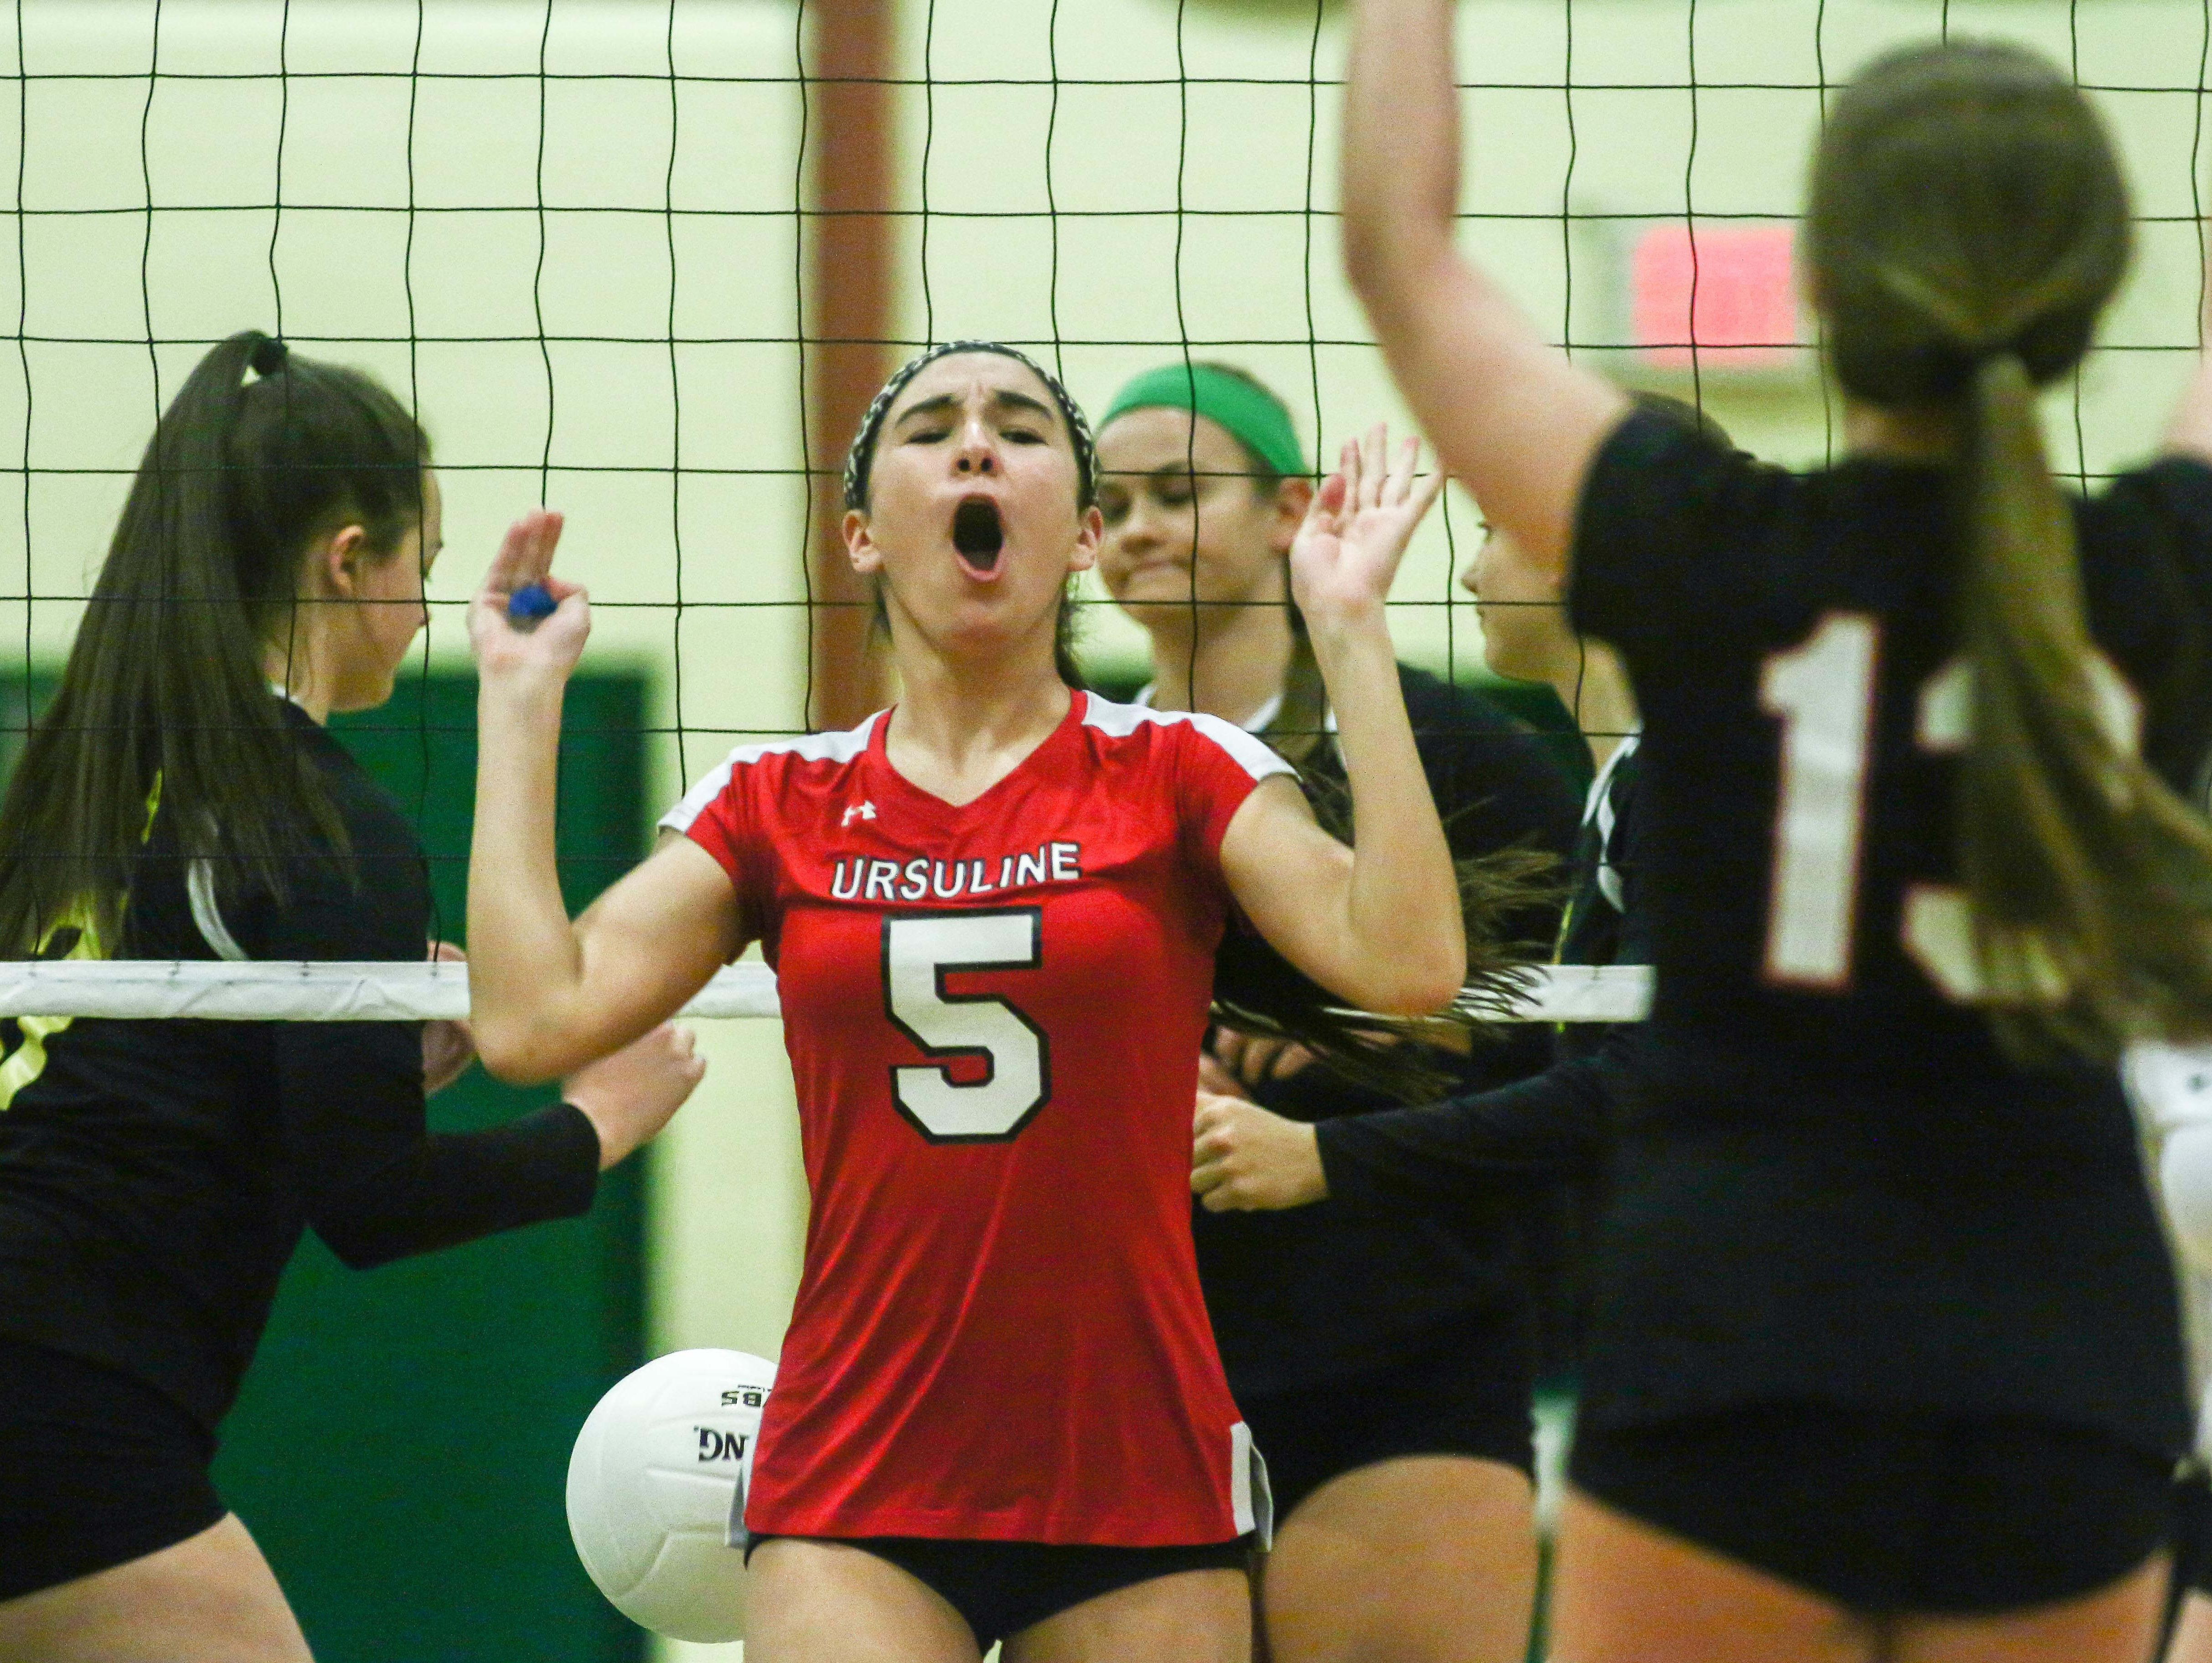 Ursuline's Kylie Nocket (5) celebrates with her teammates during a DIAA Girls Volleyball quarterfinals match between Padua and Ursuline on Tuesday at St. Mark's High School in Wilmington.